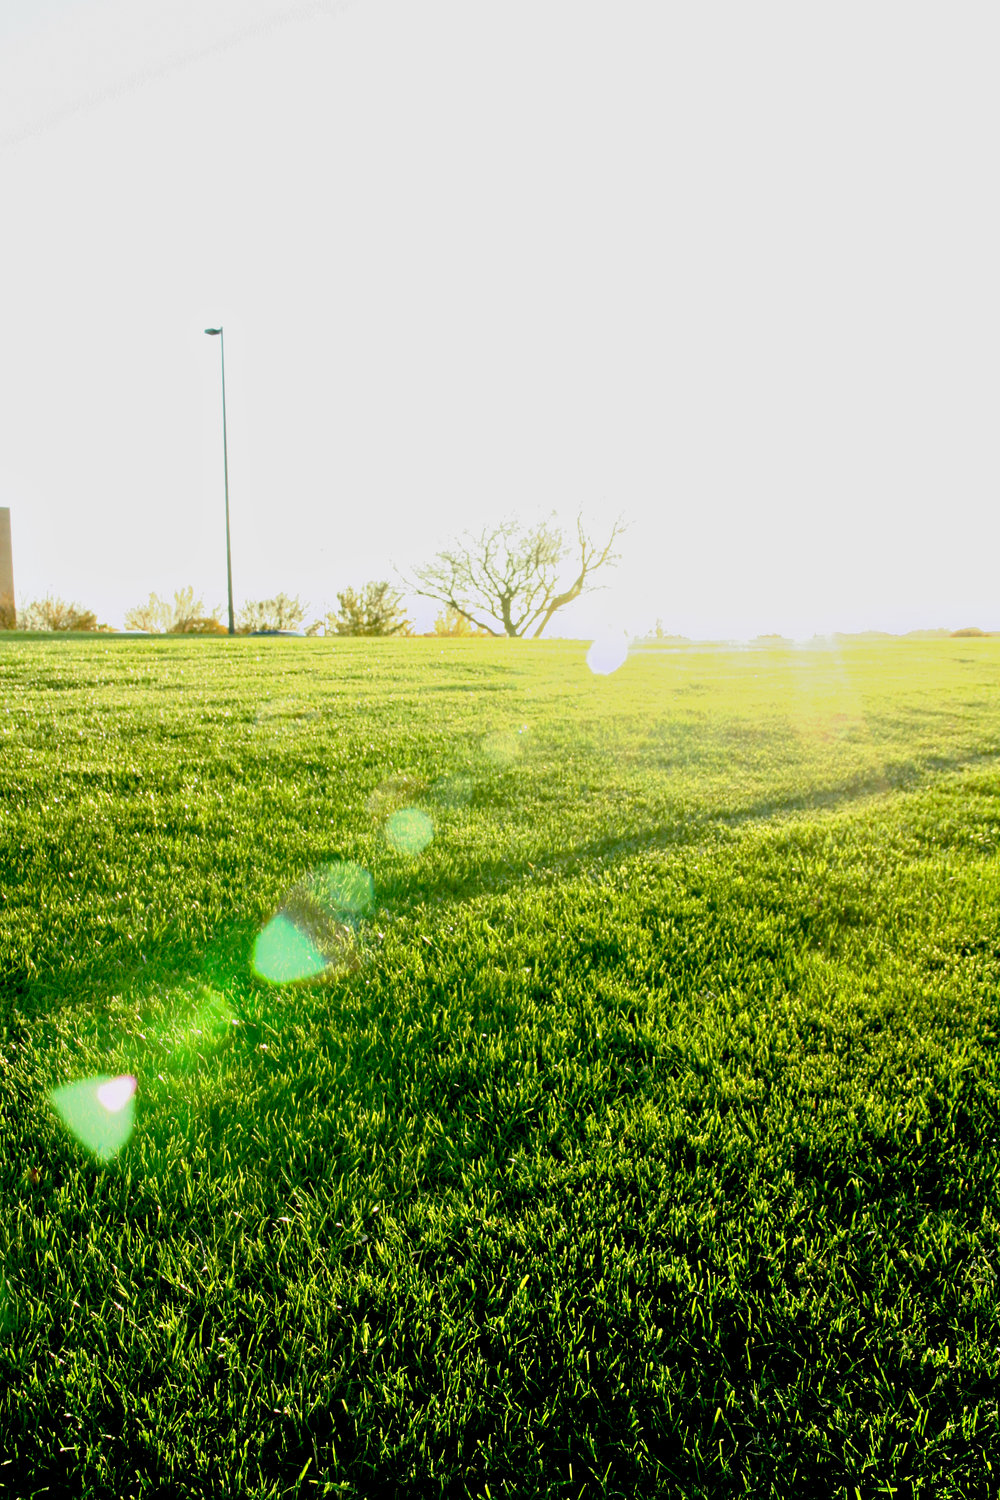 The Best News About Crabgrass - If you are a subscriber to a Hall   Stewart Lawn Care Program, either the 7-Step Weed Control & Fertilizer or the 4-Step Weed Control Only, you have already had your 1st Pre-emergent Application to prevent crabgrass this year!